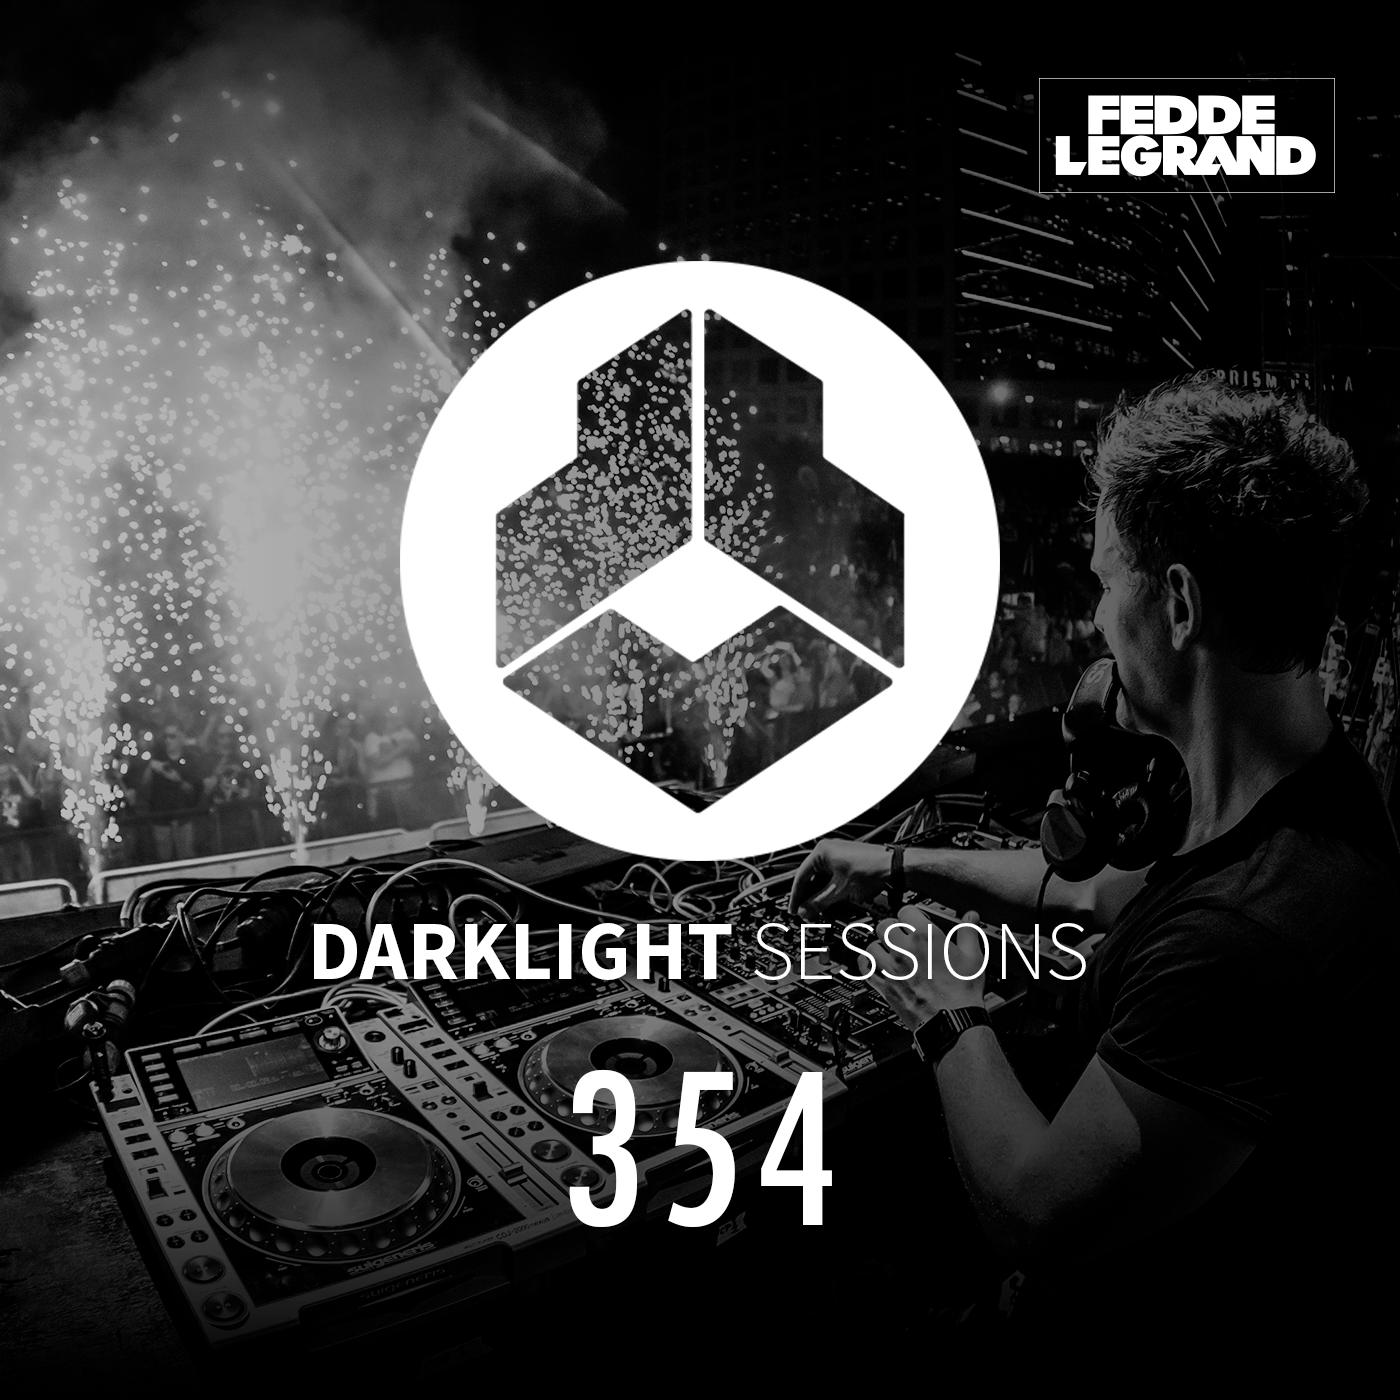 Darklight Sessions 354